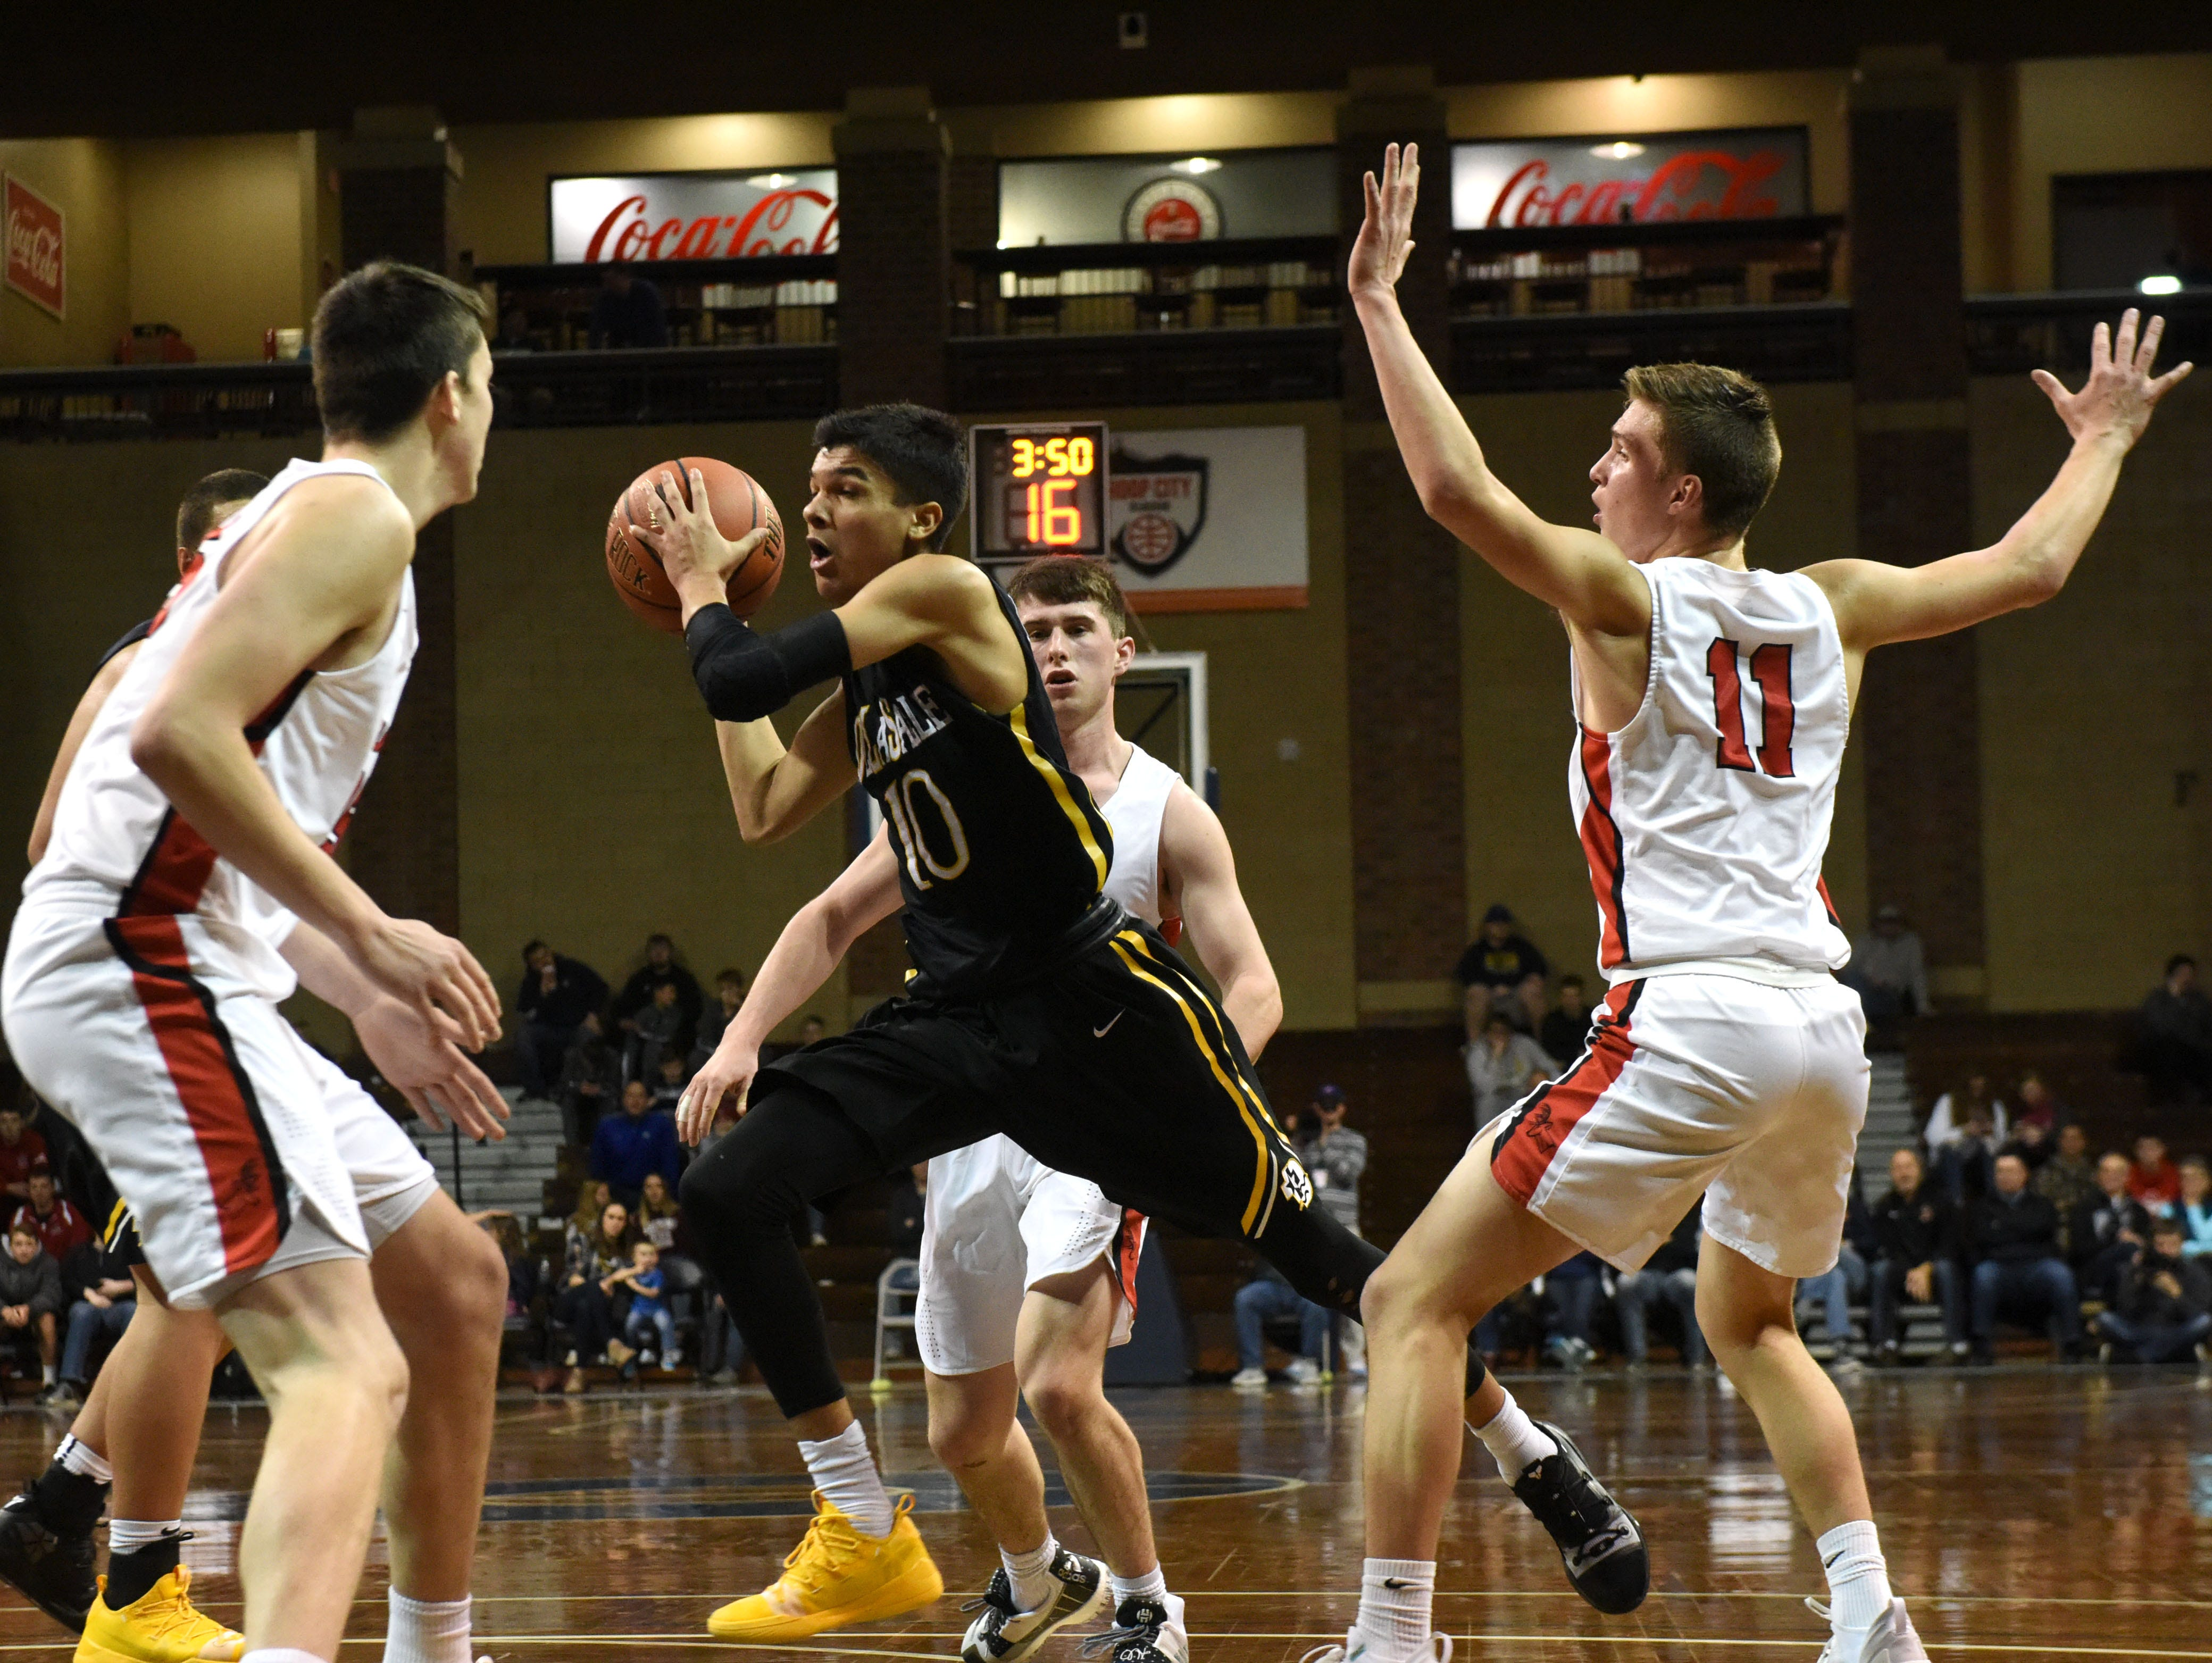 Delasalle's Tyrell Terry (10) dribbles the ball past Yankton players at the Hoop City Classic at the Sanford Pentagon in Sioux Falls, S.D., Saturday, Dec. 29, 2018.